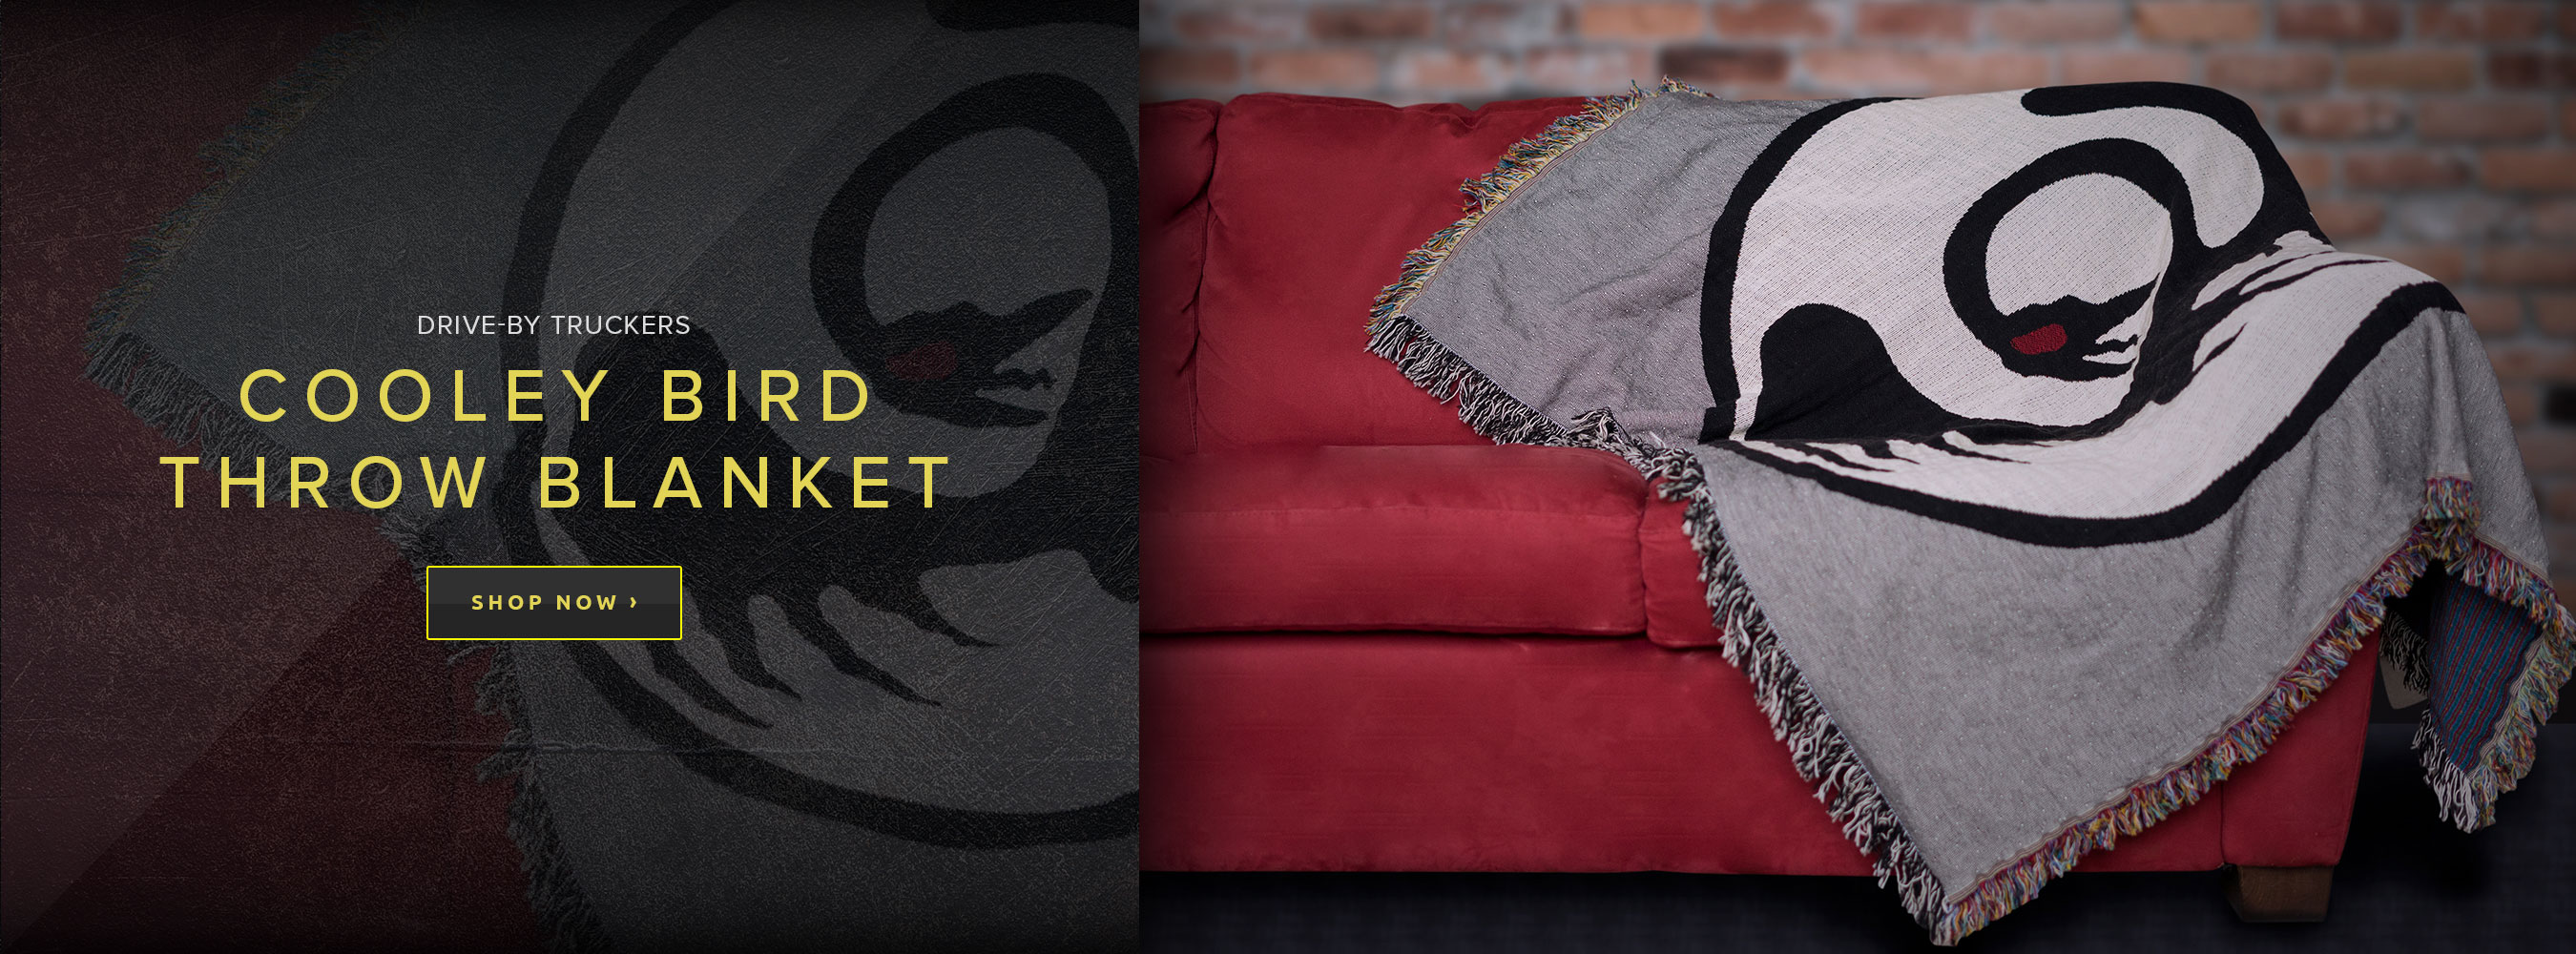 The Flying Cooley Bird Throw Blanket